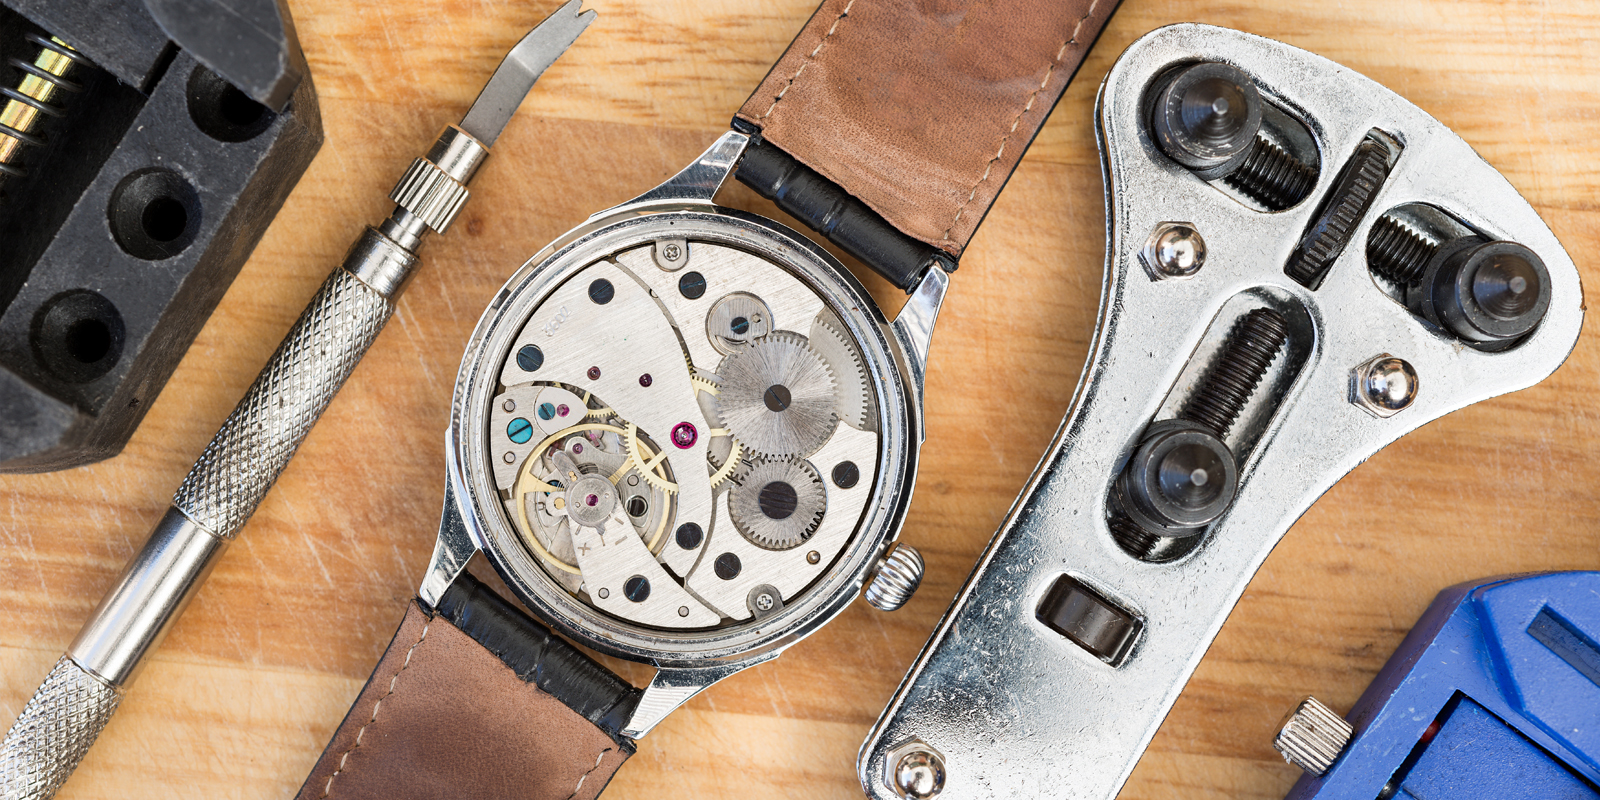 Watch Accessories and Tools | The Watch Prince